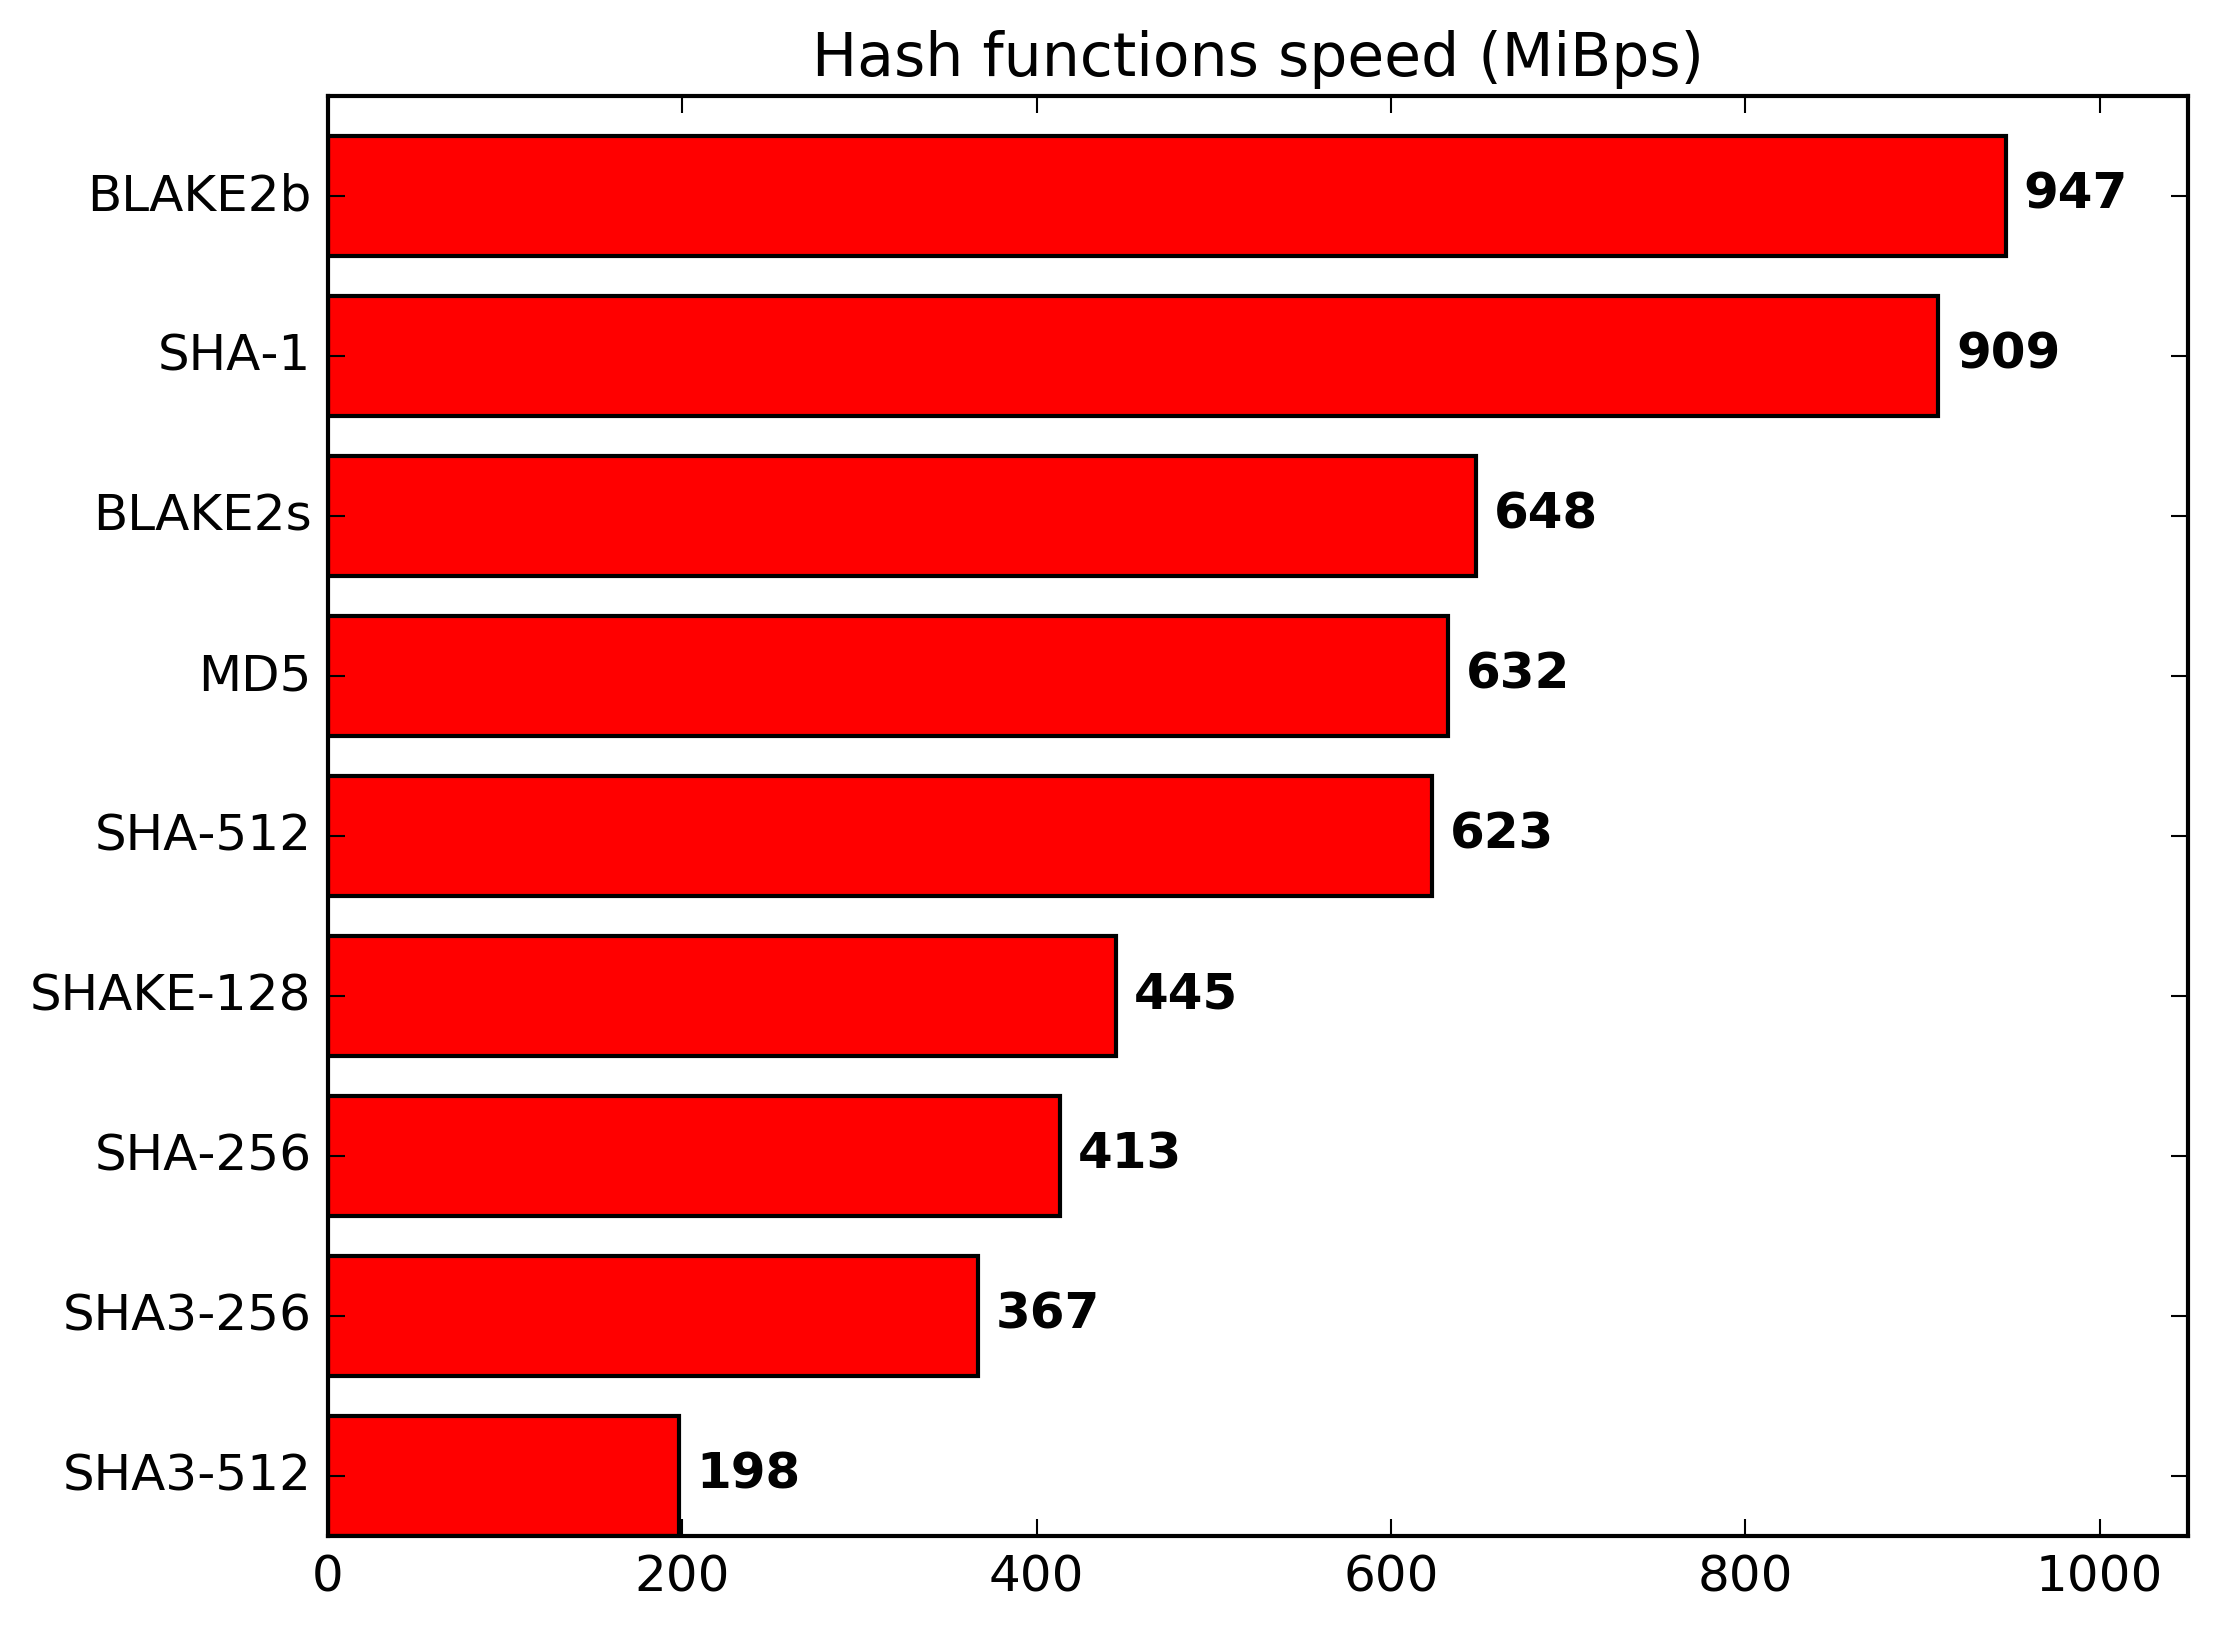 Hash Functions Speed Benchmarking